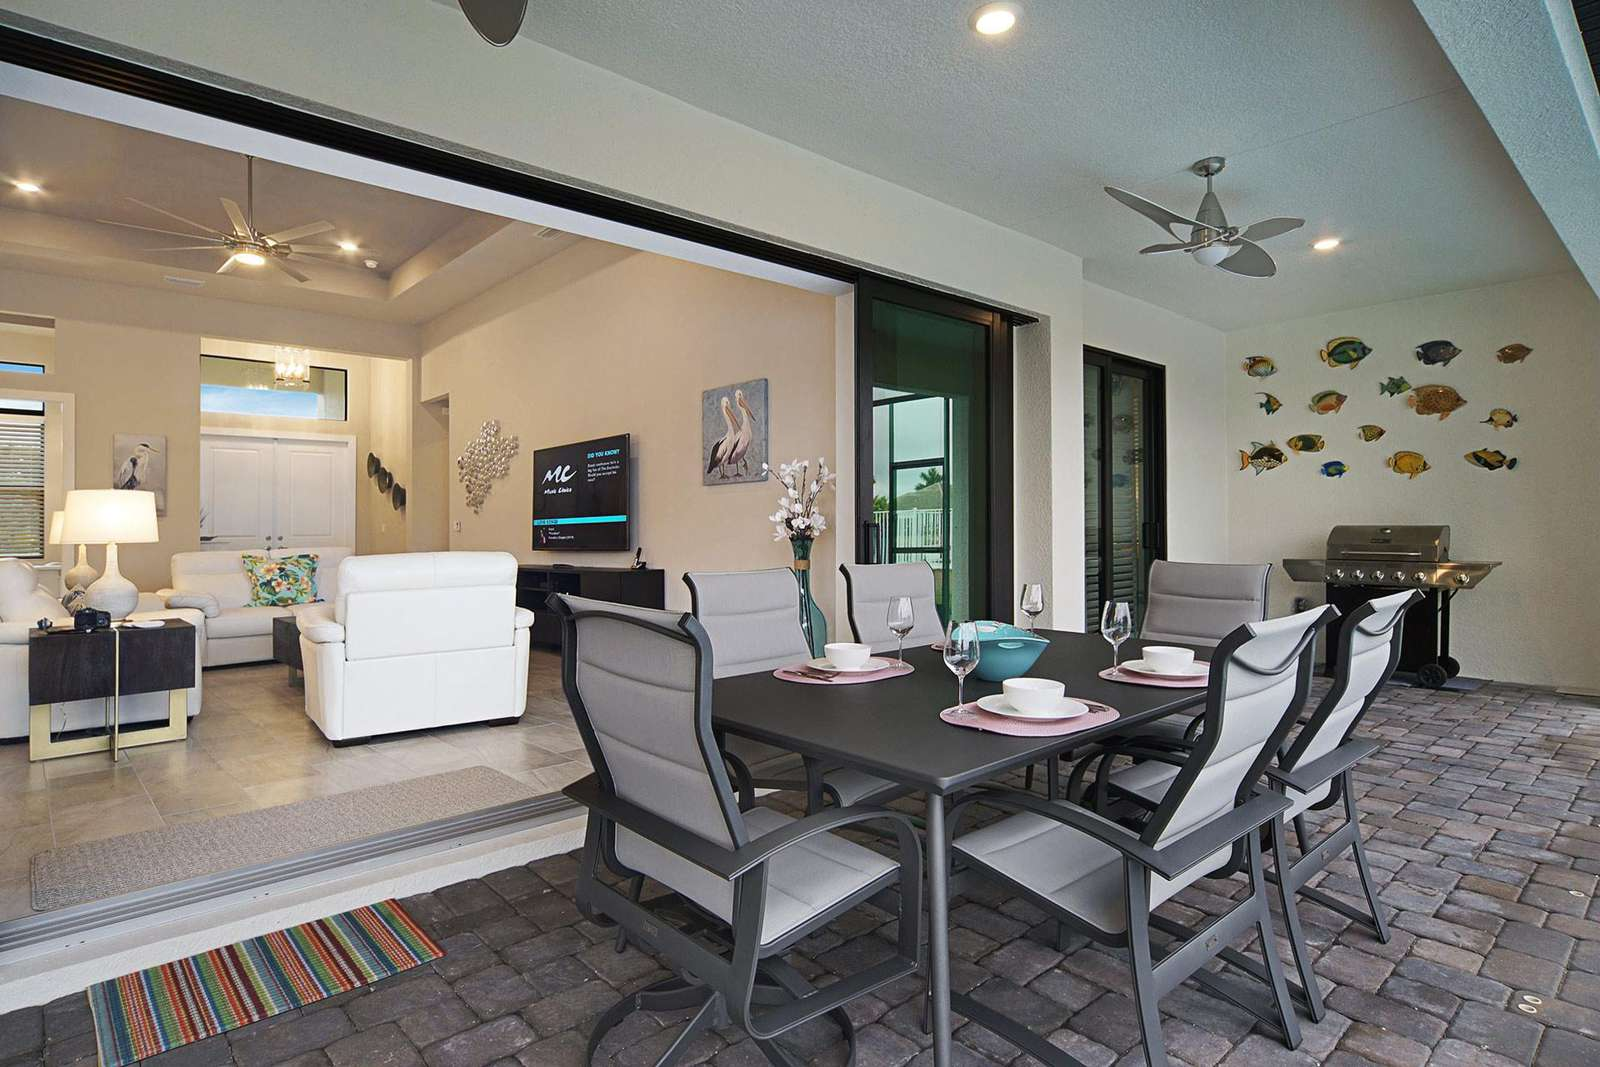 Wischis Florida Home - Vacation Rentals Cape Coral - Property Management - Real Estate